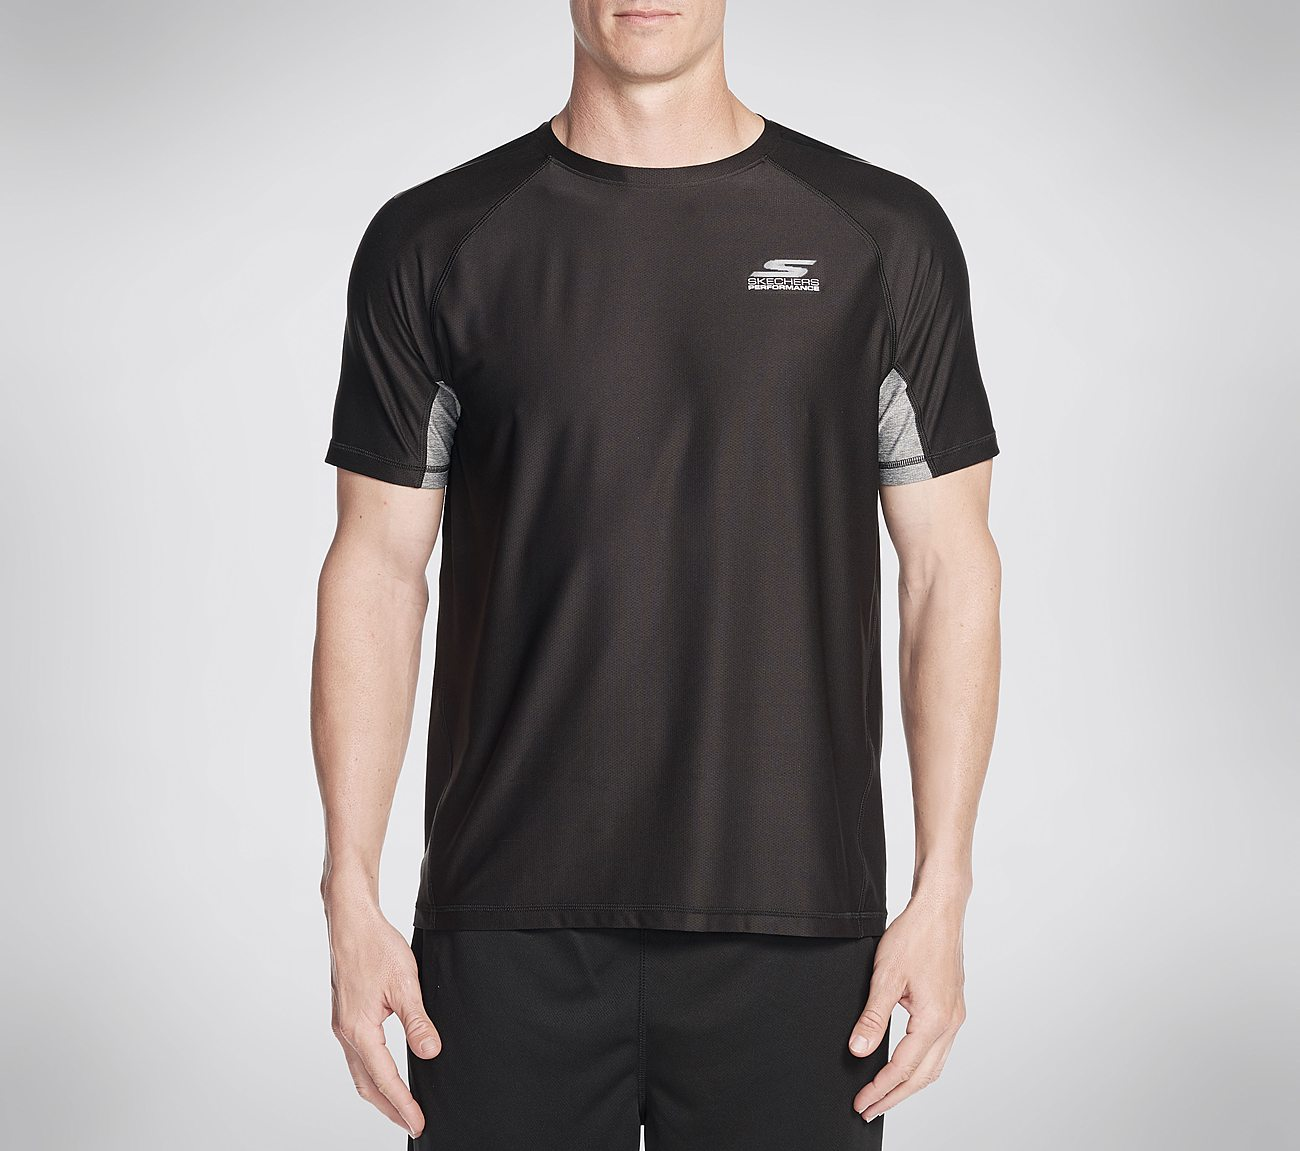 Sprint Short Sleeve Tee Shirt